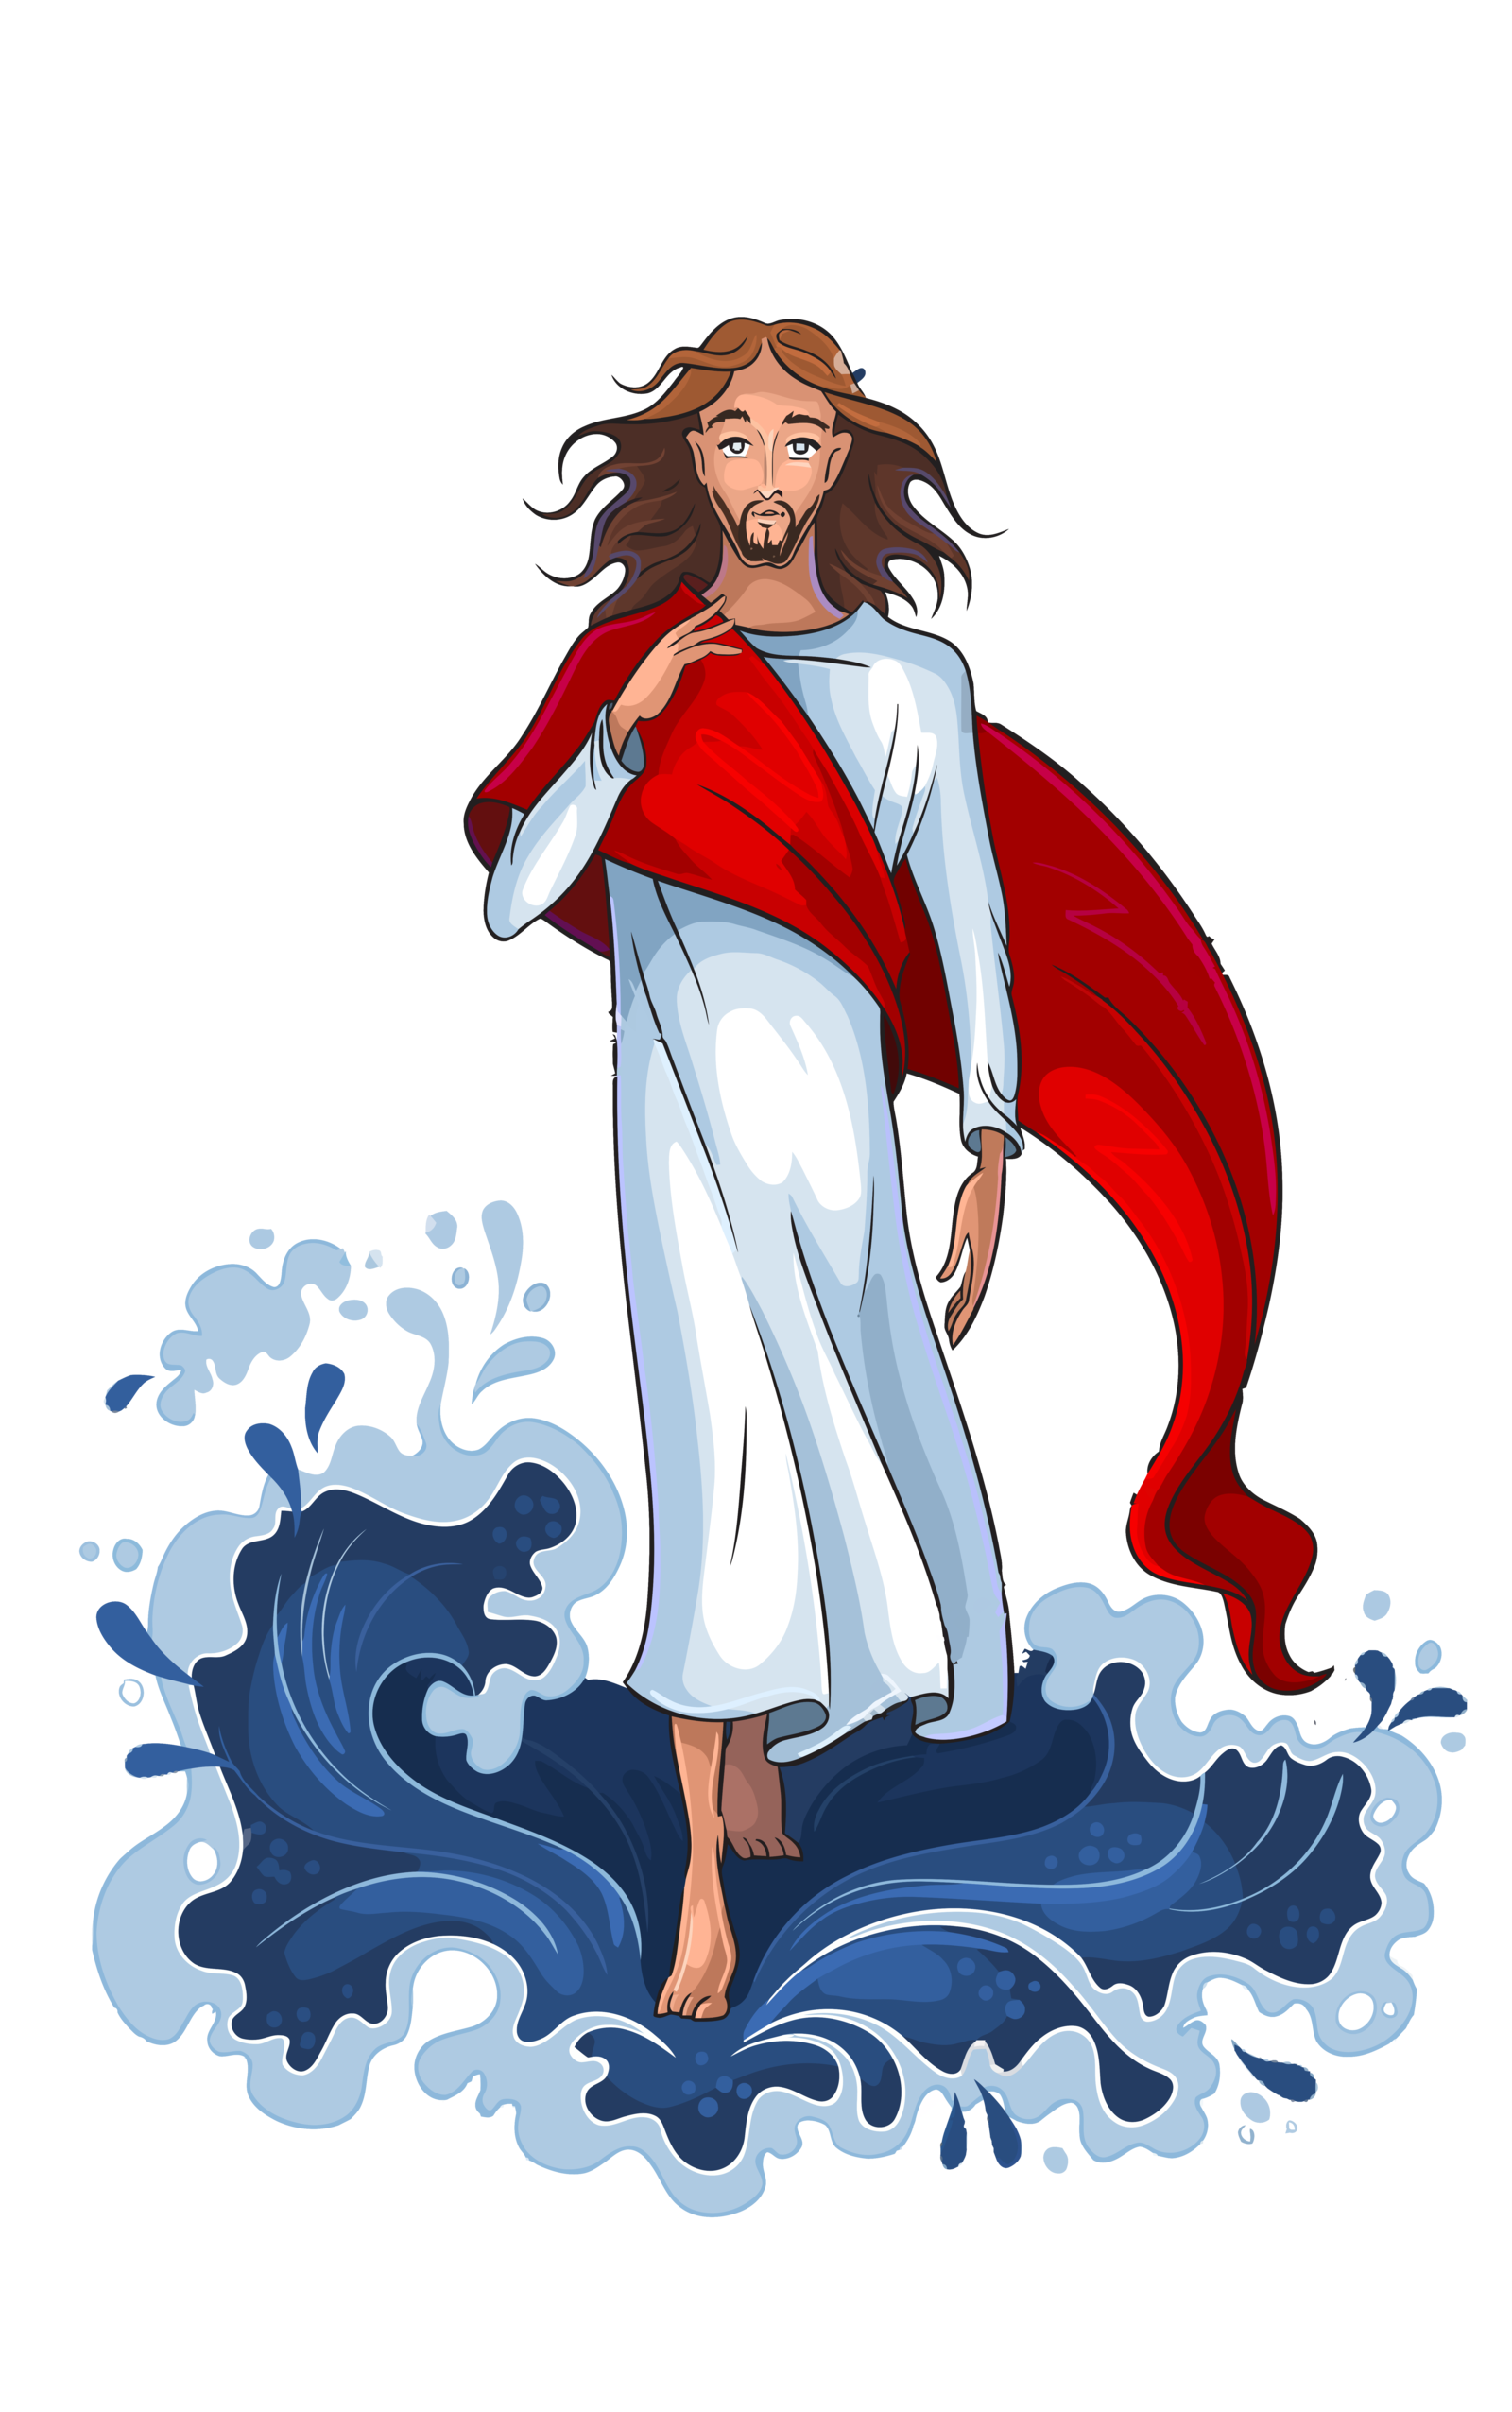 Christian vector jesus piece. Image result for kmino